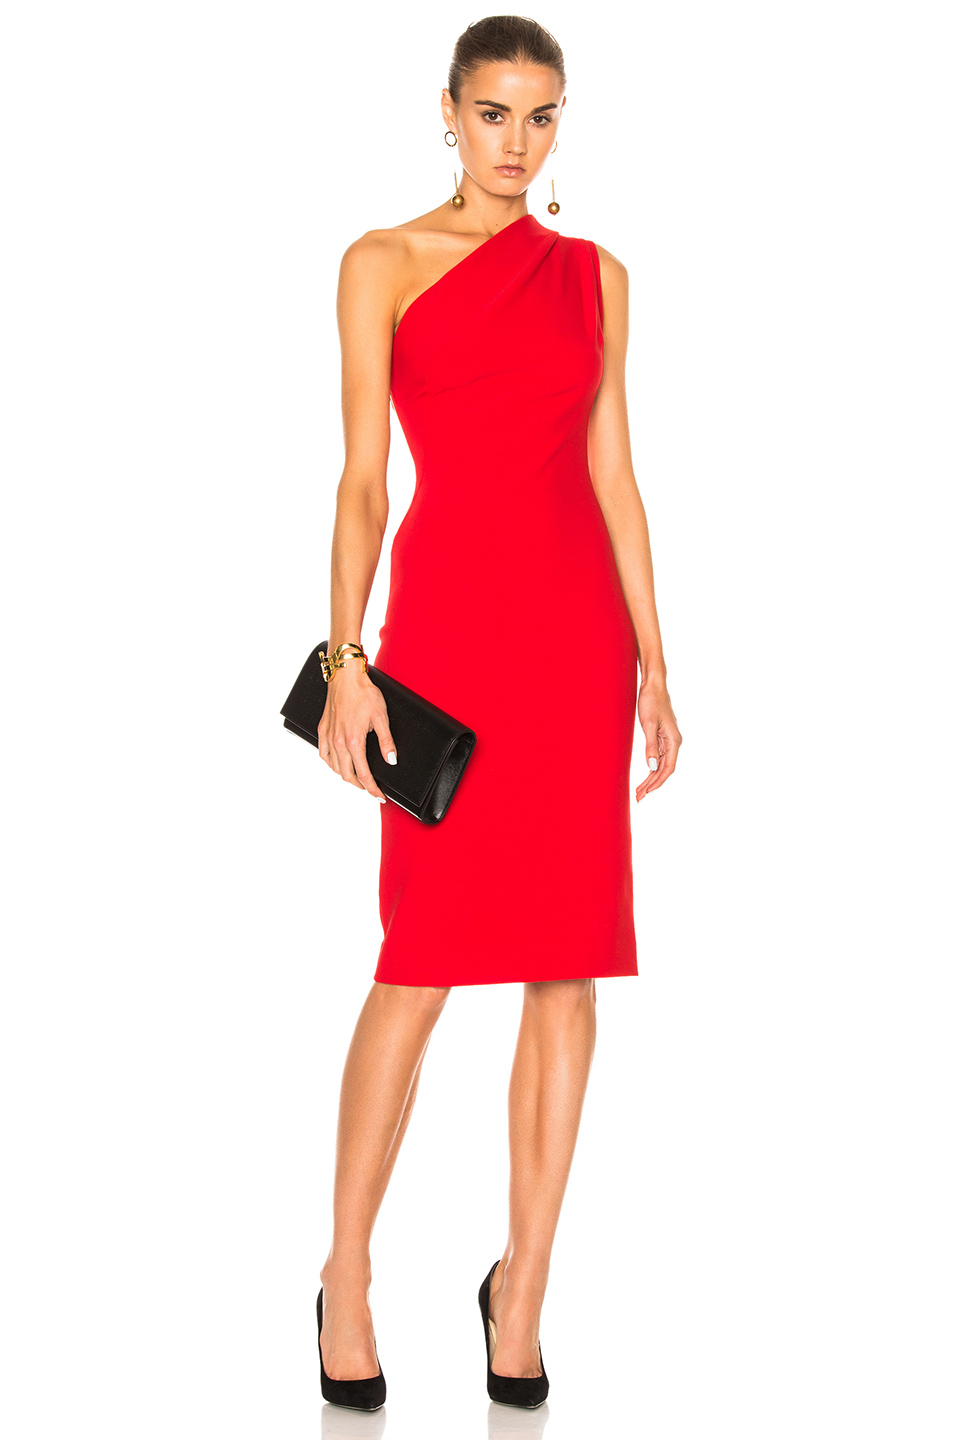 HANEY Mila Dress in Red